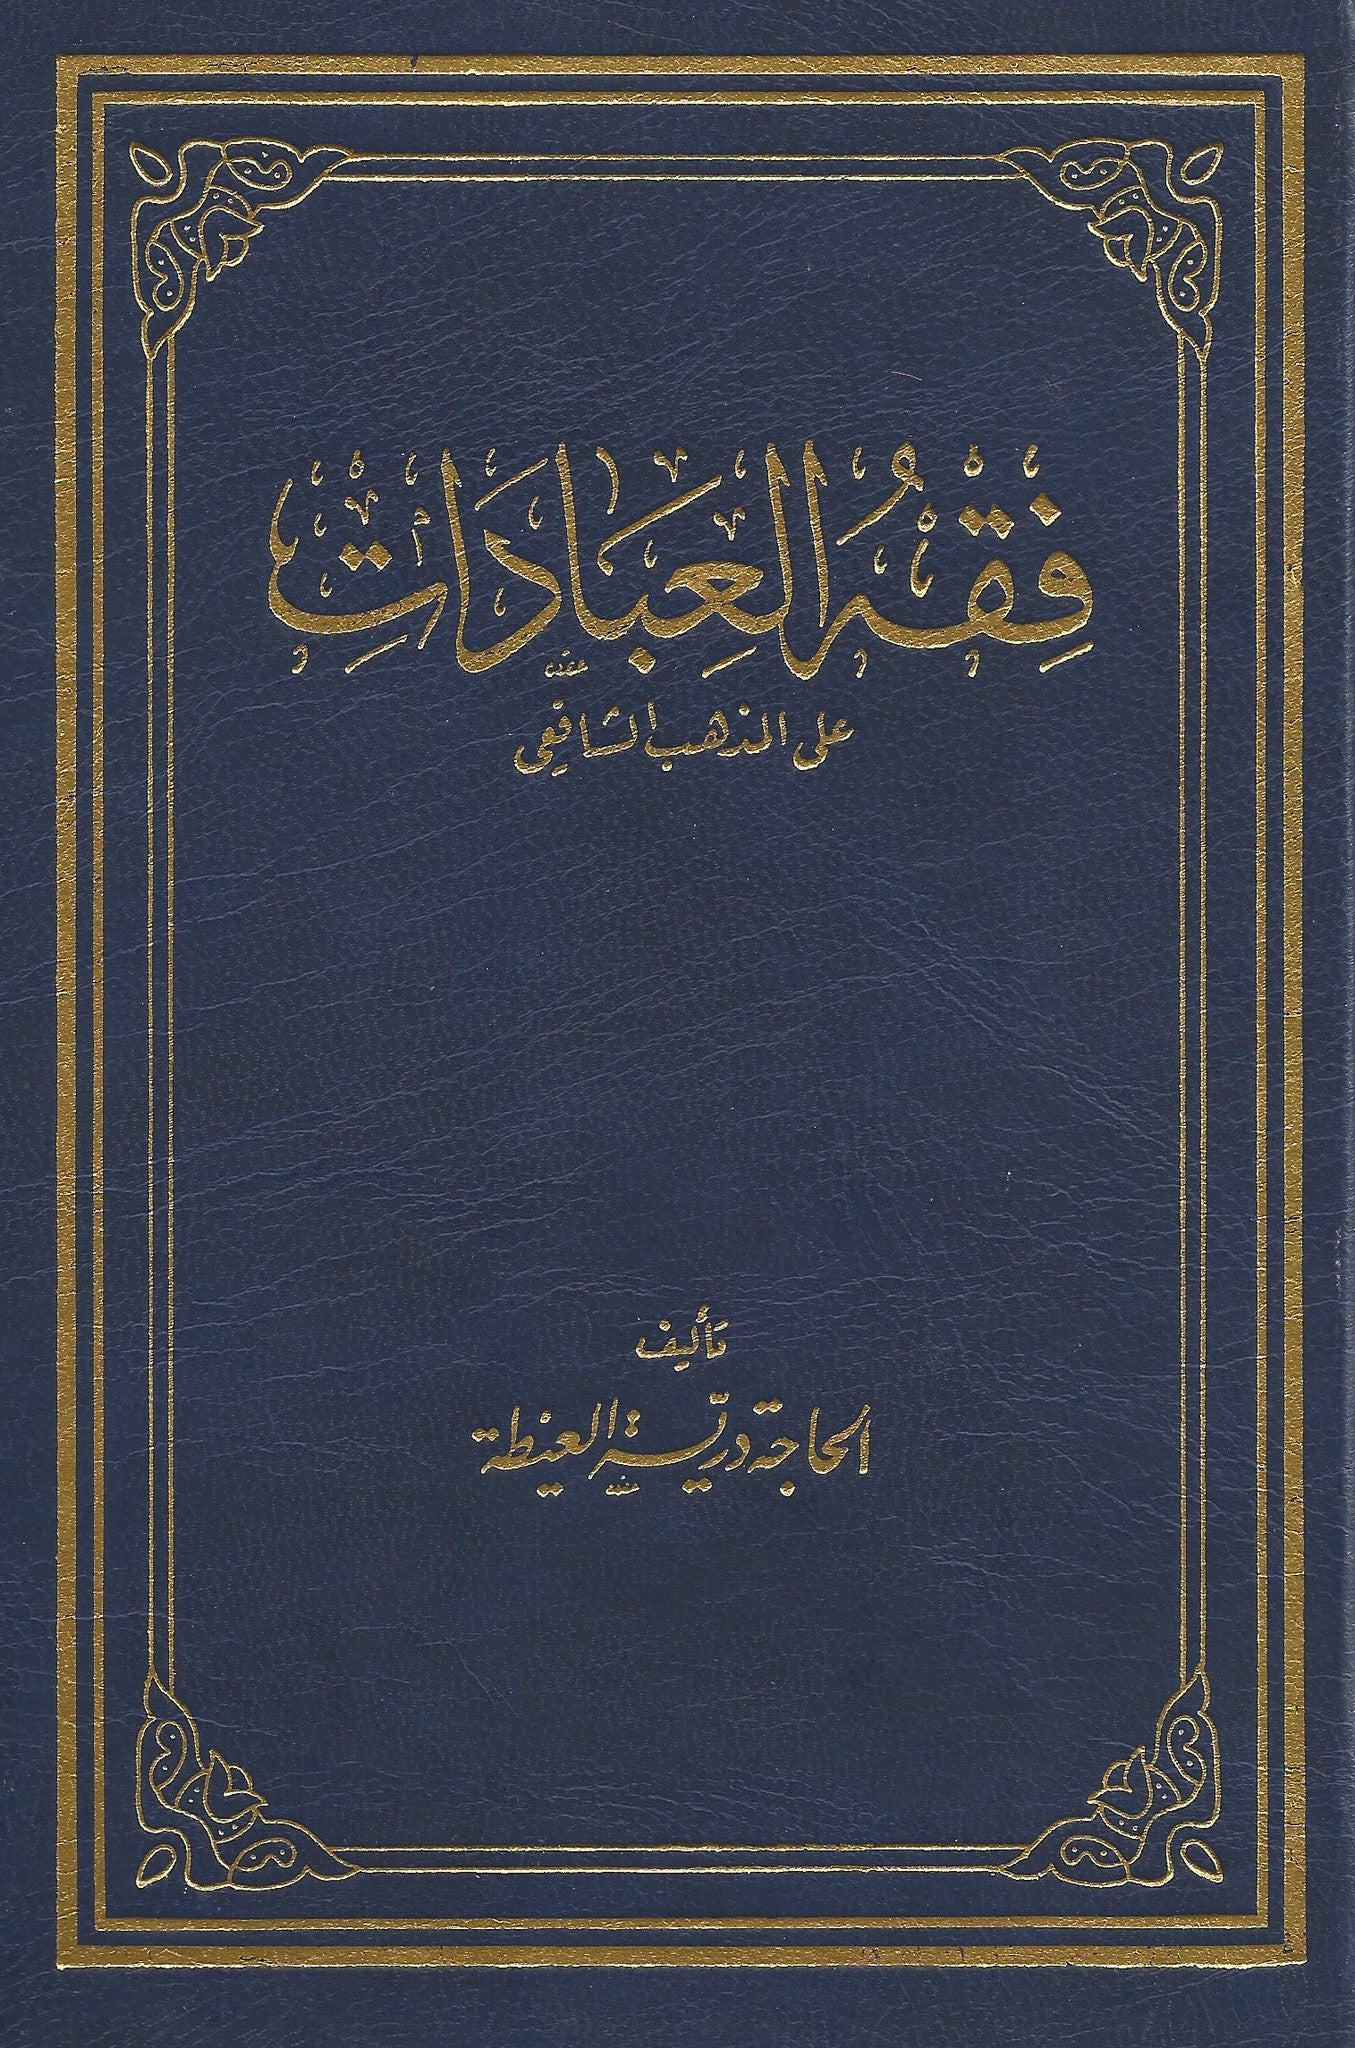 Fiqh al-Ibadat in the Shafi'i madhhab - Arabic كتاب فقه العبادات , Shaam - Daybreak International Bookstore, Daybreak Press Global Bookshop  - 2